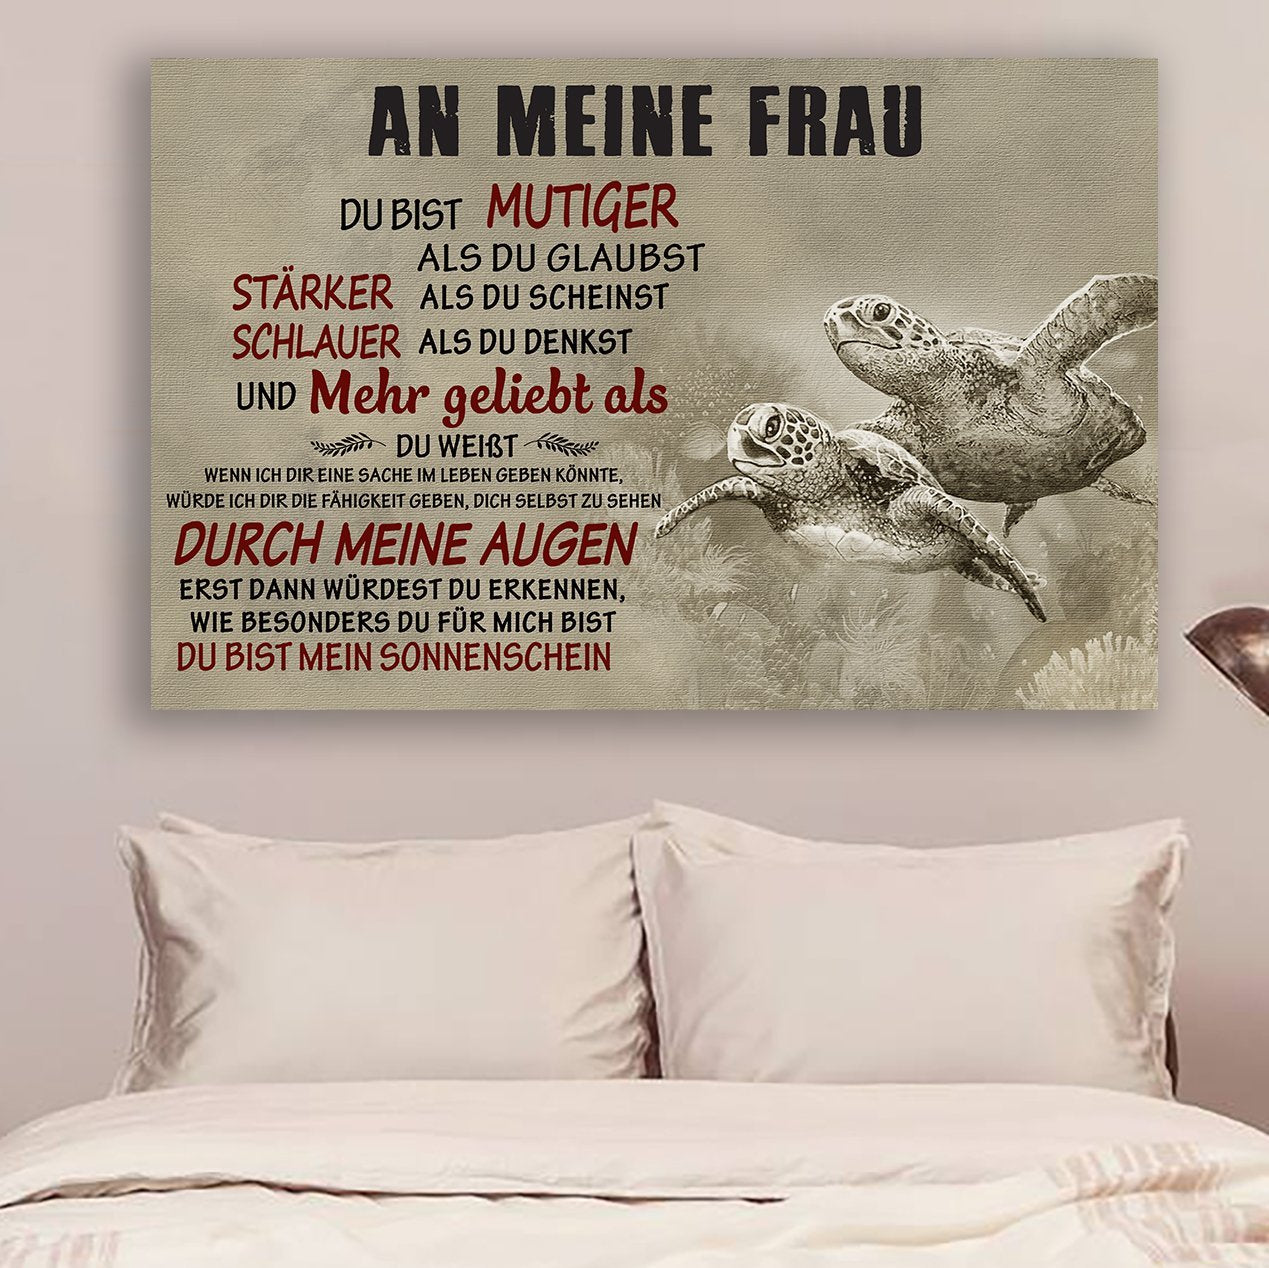 (CV1014) Turtle poster - An meine frau - You are braver - Germany